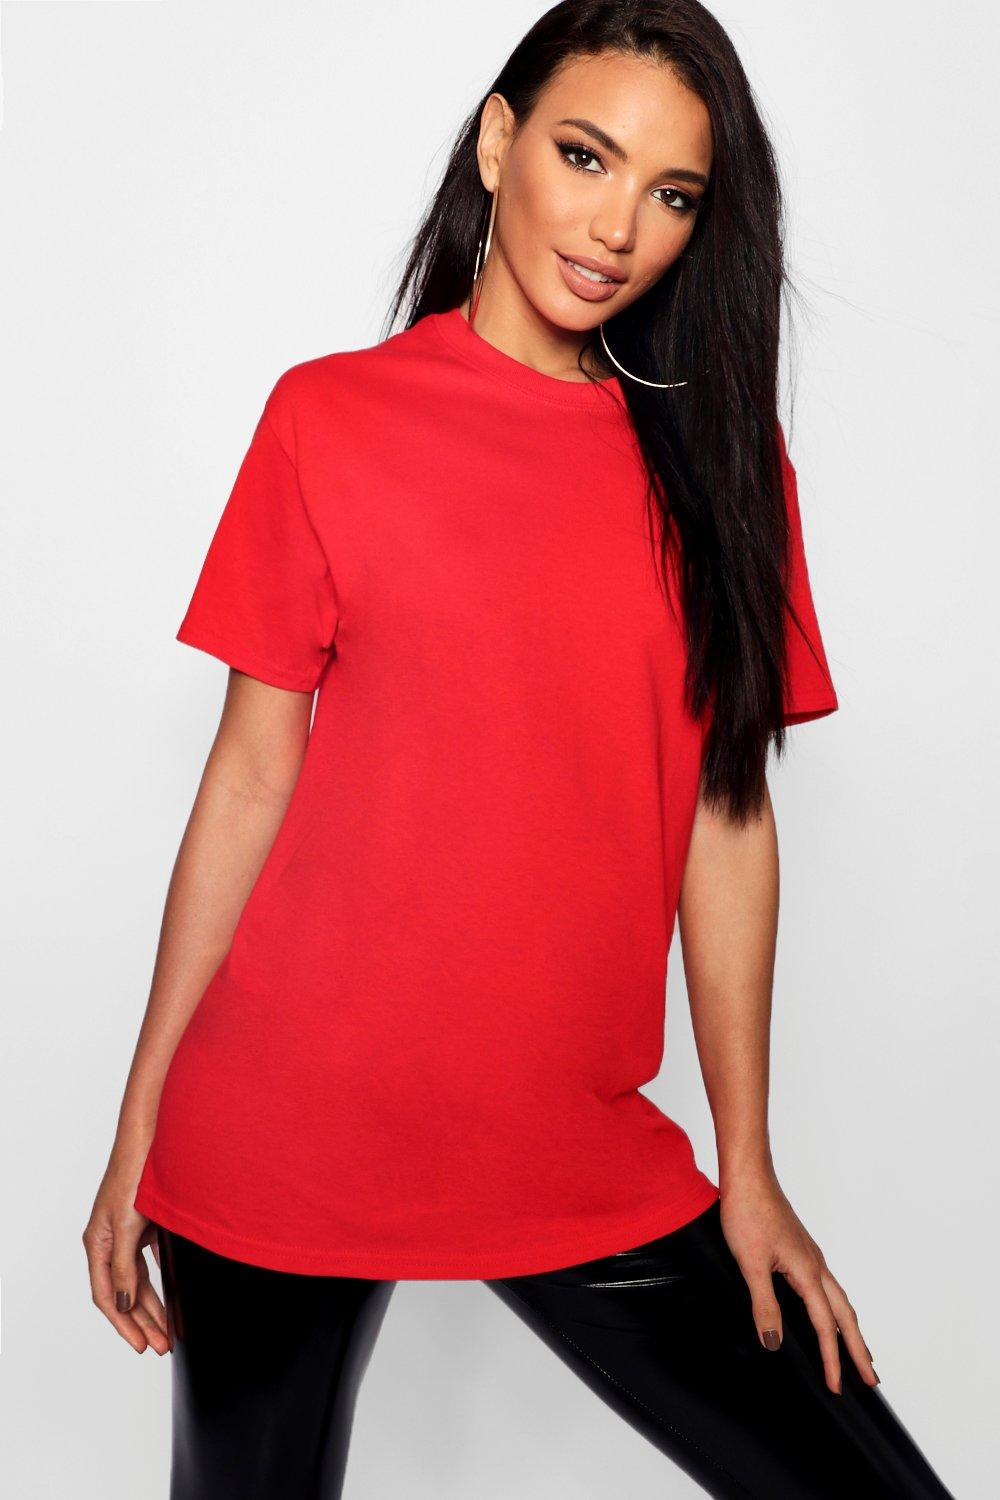 Womens Übergroßes Basic-T-Shirt - red - M, Red - Boohoo.com